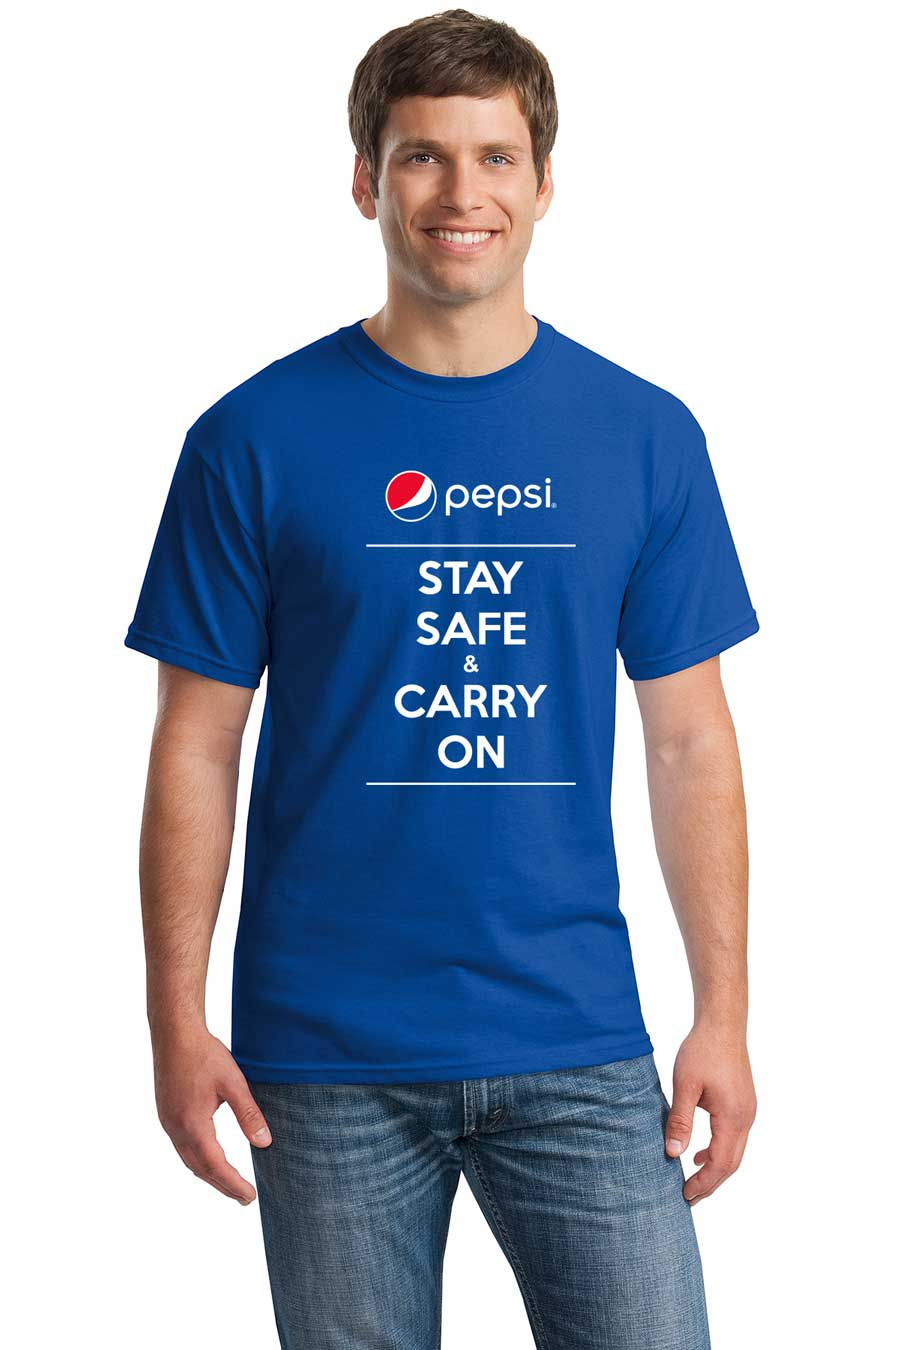 Pepsi Stay Safe & Carry On Men's Tshirt - Royal